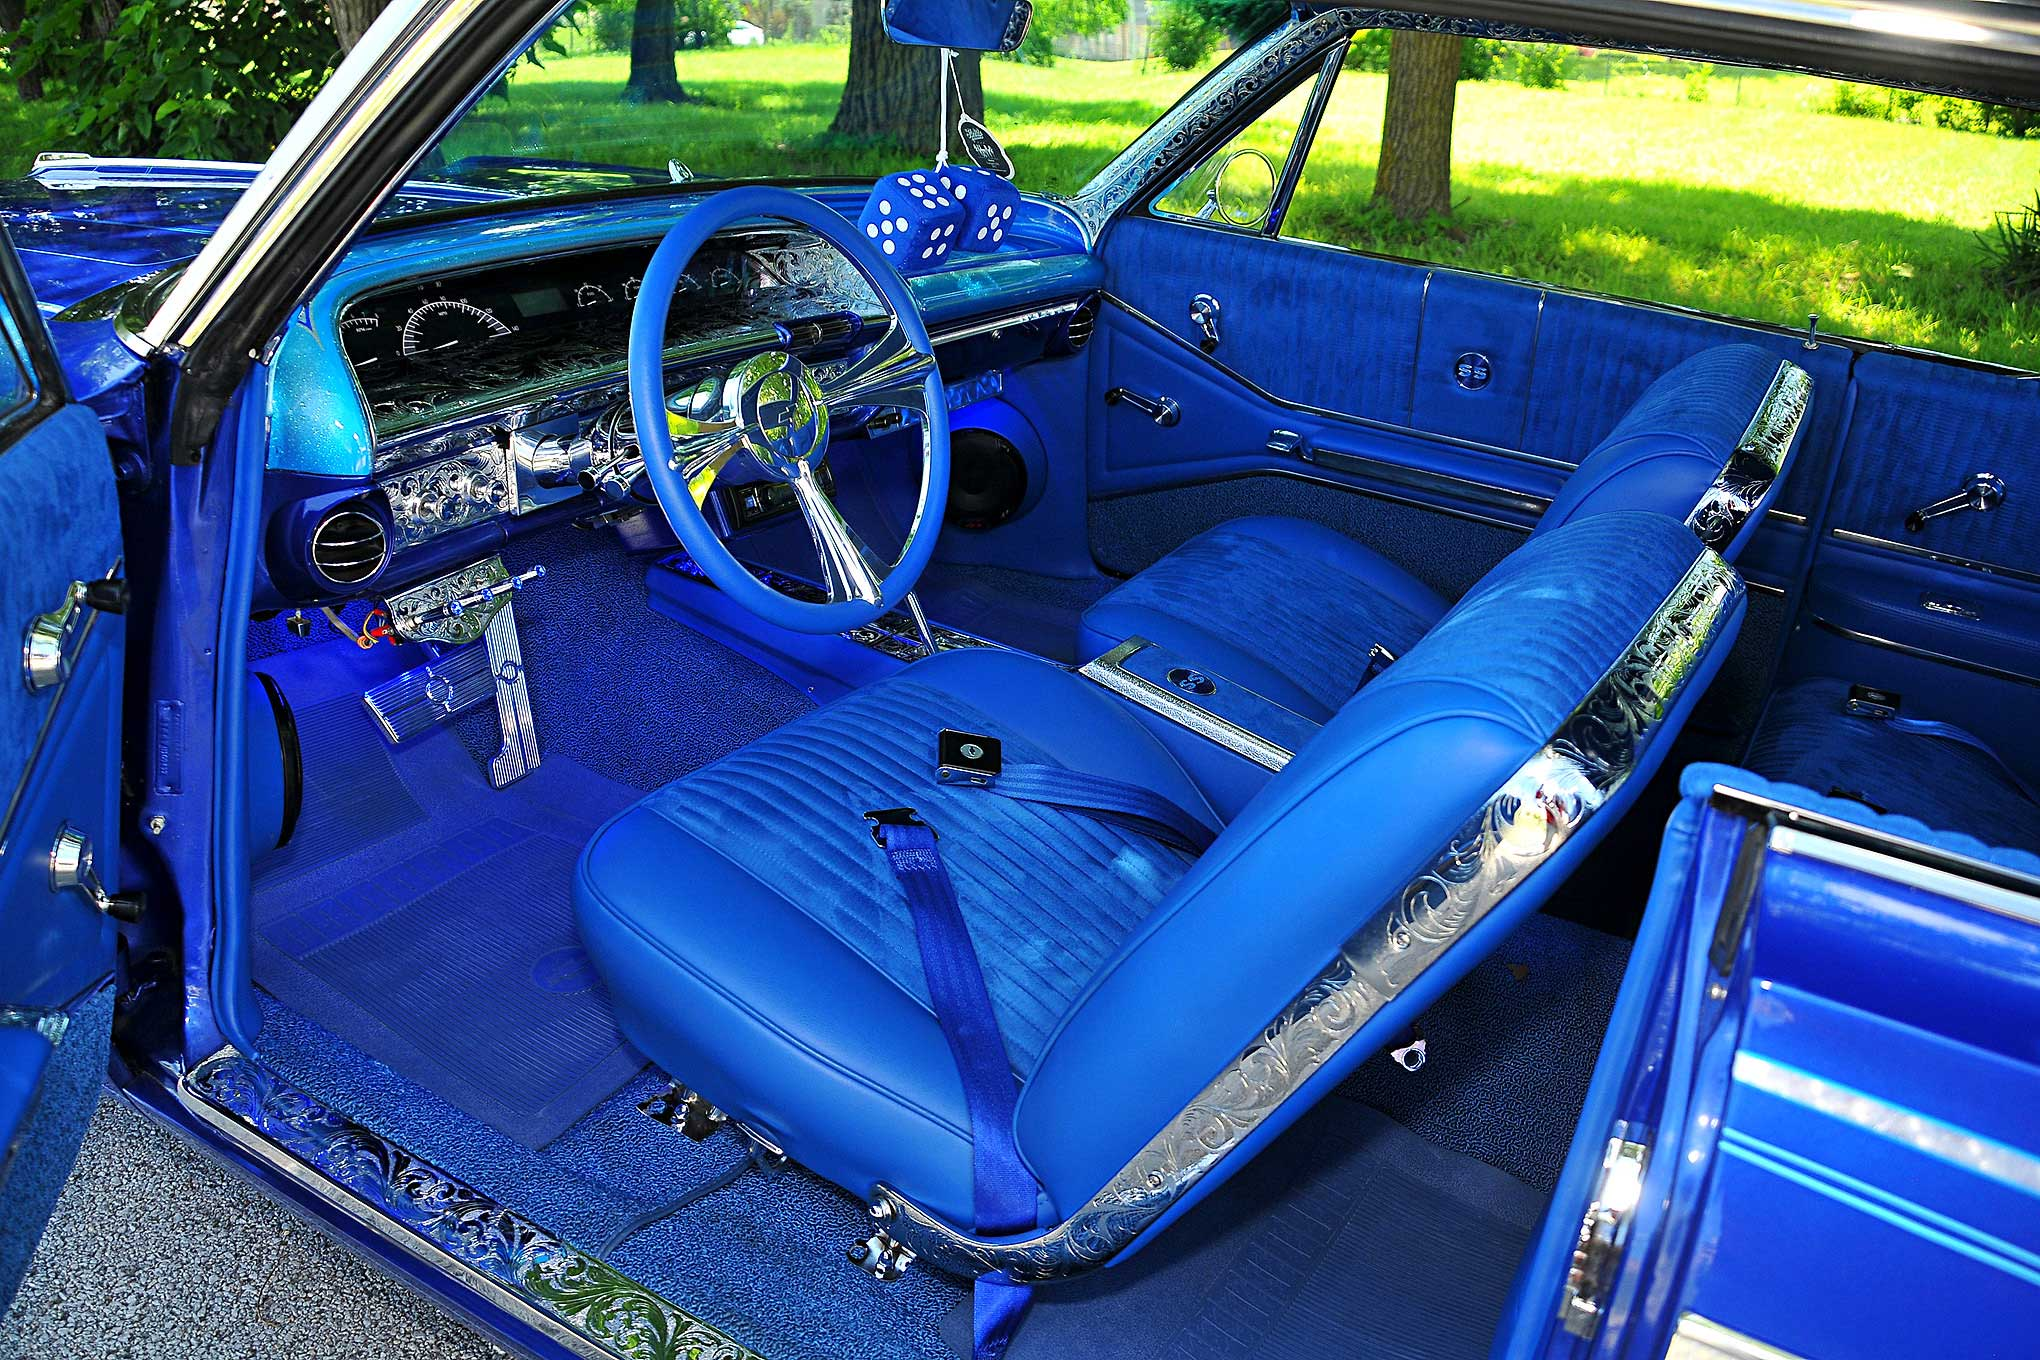 Fine 1964 Chevrolet Impala Blue Upholstery Interior Lowrider Gmtry Best Dining Table And Chair Ideas Images Gmtryco